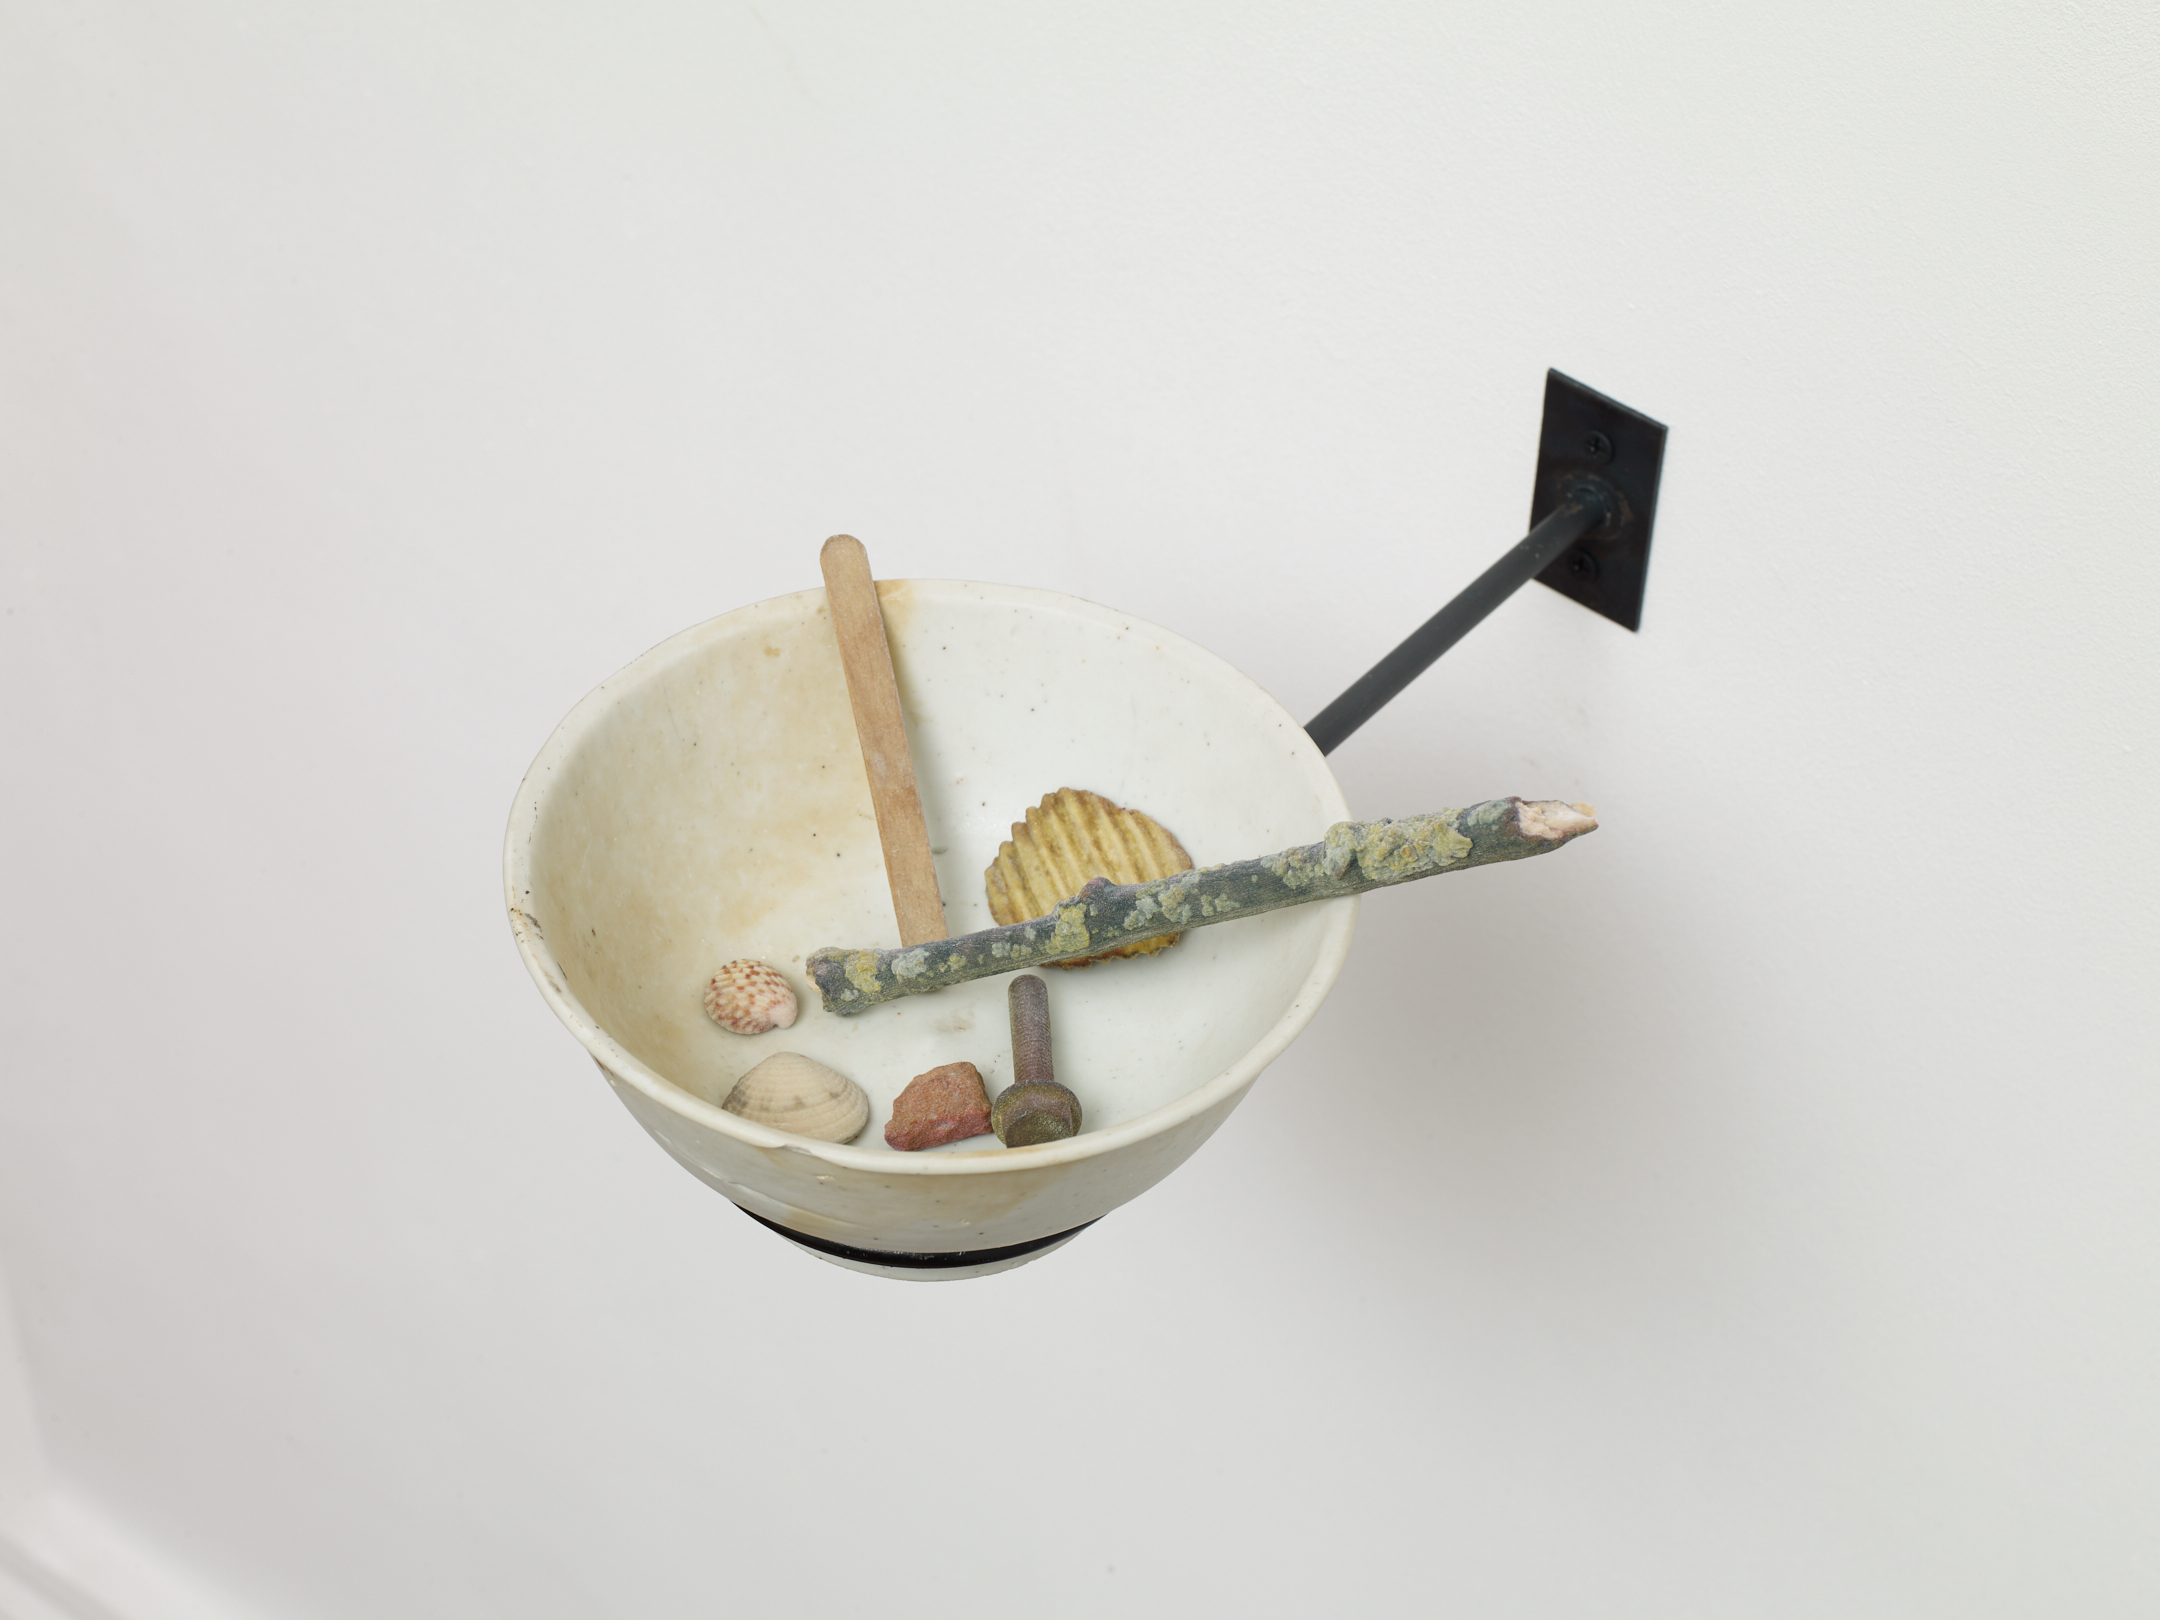 Victor Seaward  Vessel,  2019 Qing Dynasty bowl from the Tek Sing shipwreck (1822), 3D printed gypsum objects, and mild steel armature